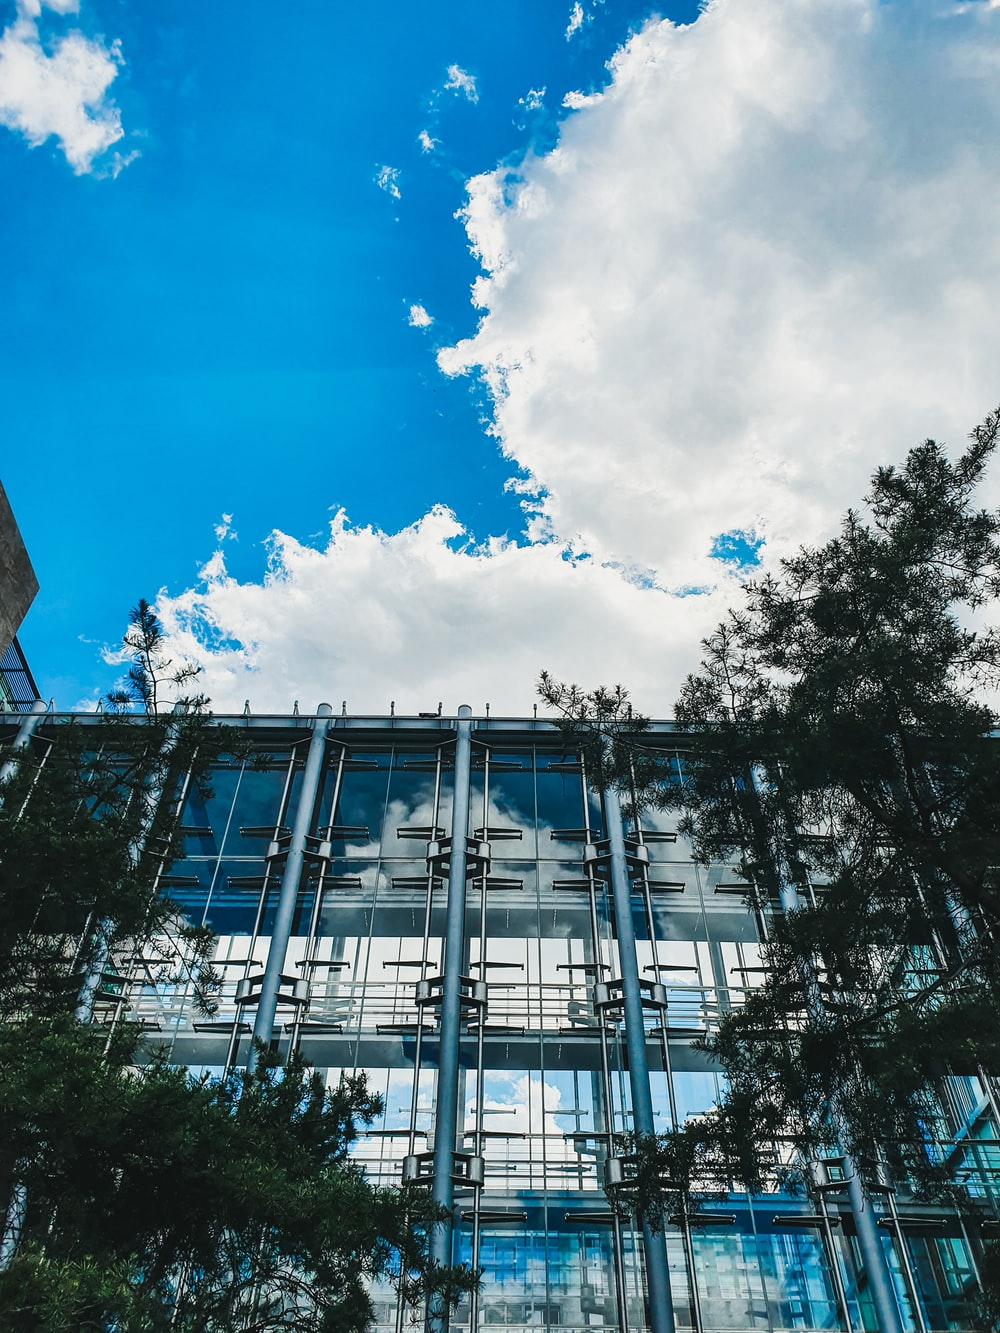 low angle photography of trees and buildings under blue sky and white clouds during daytime